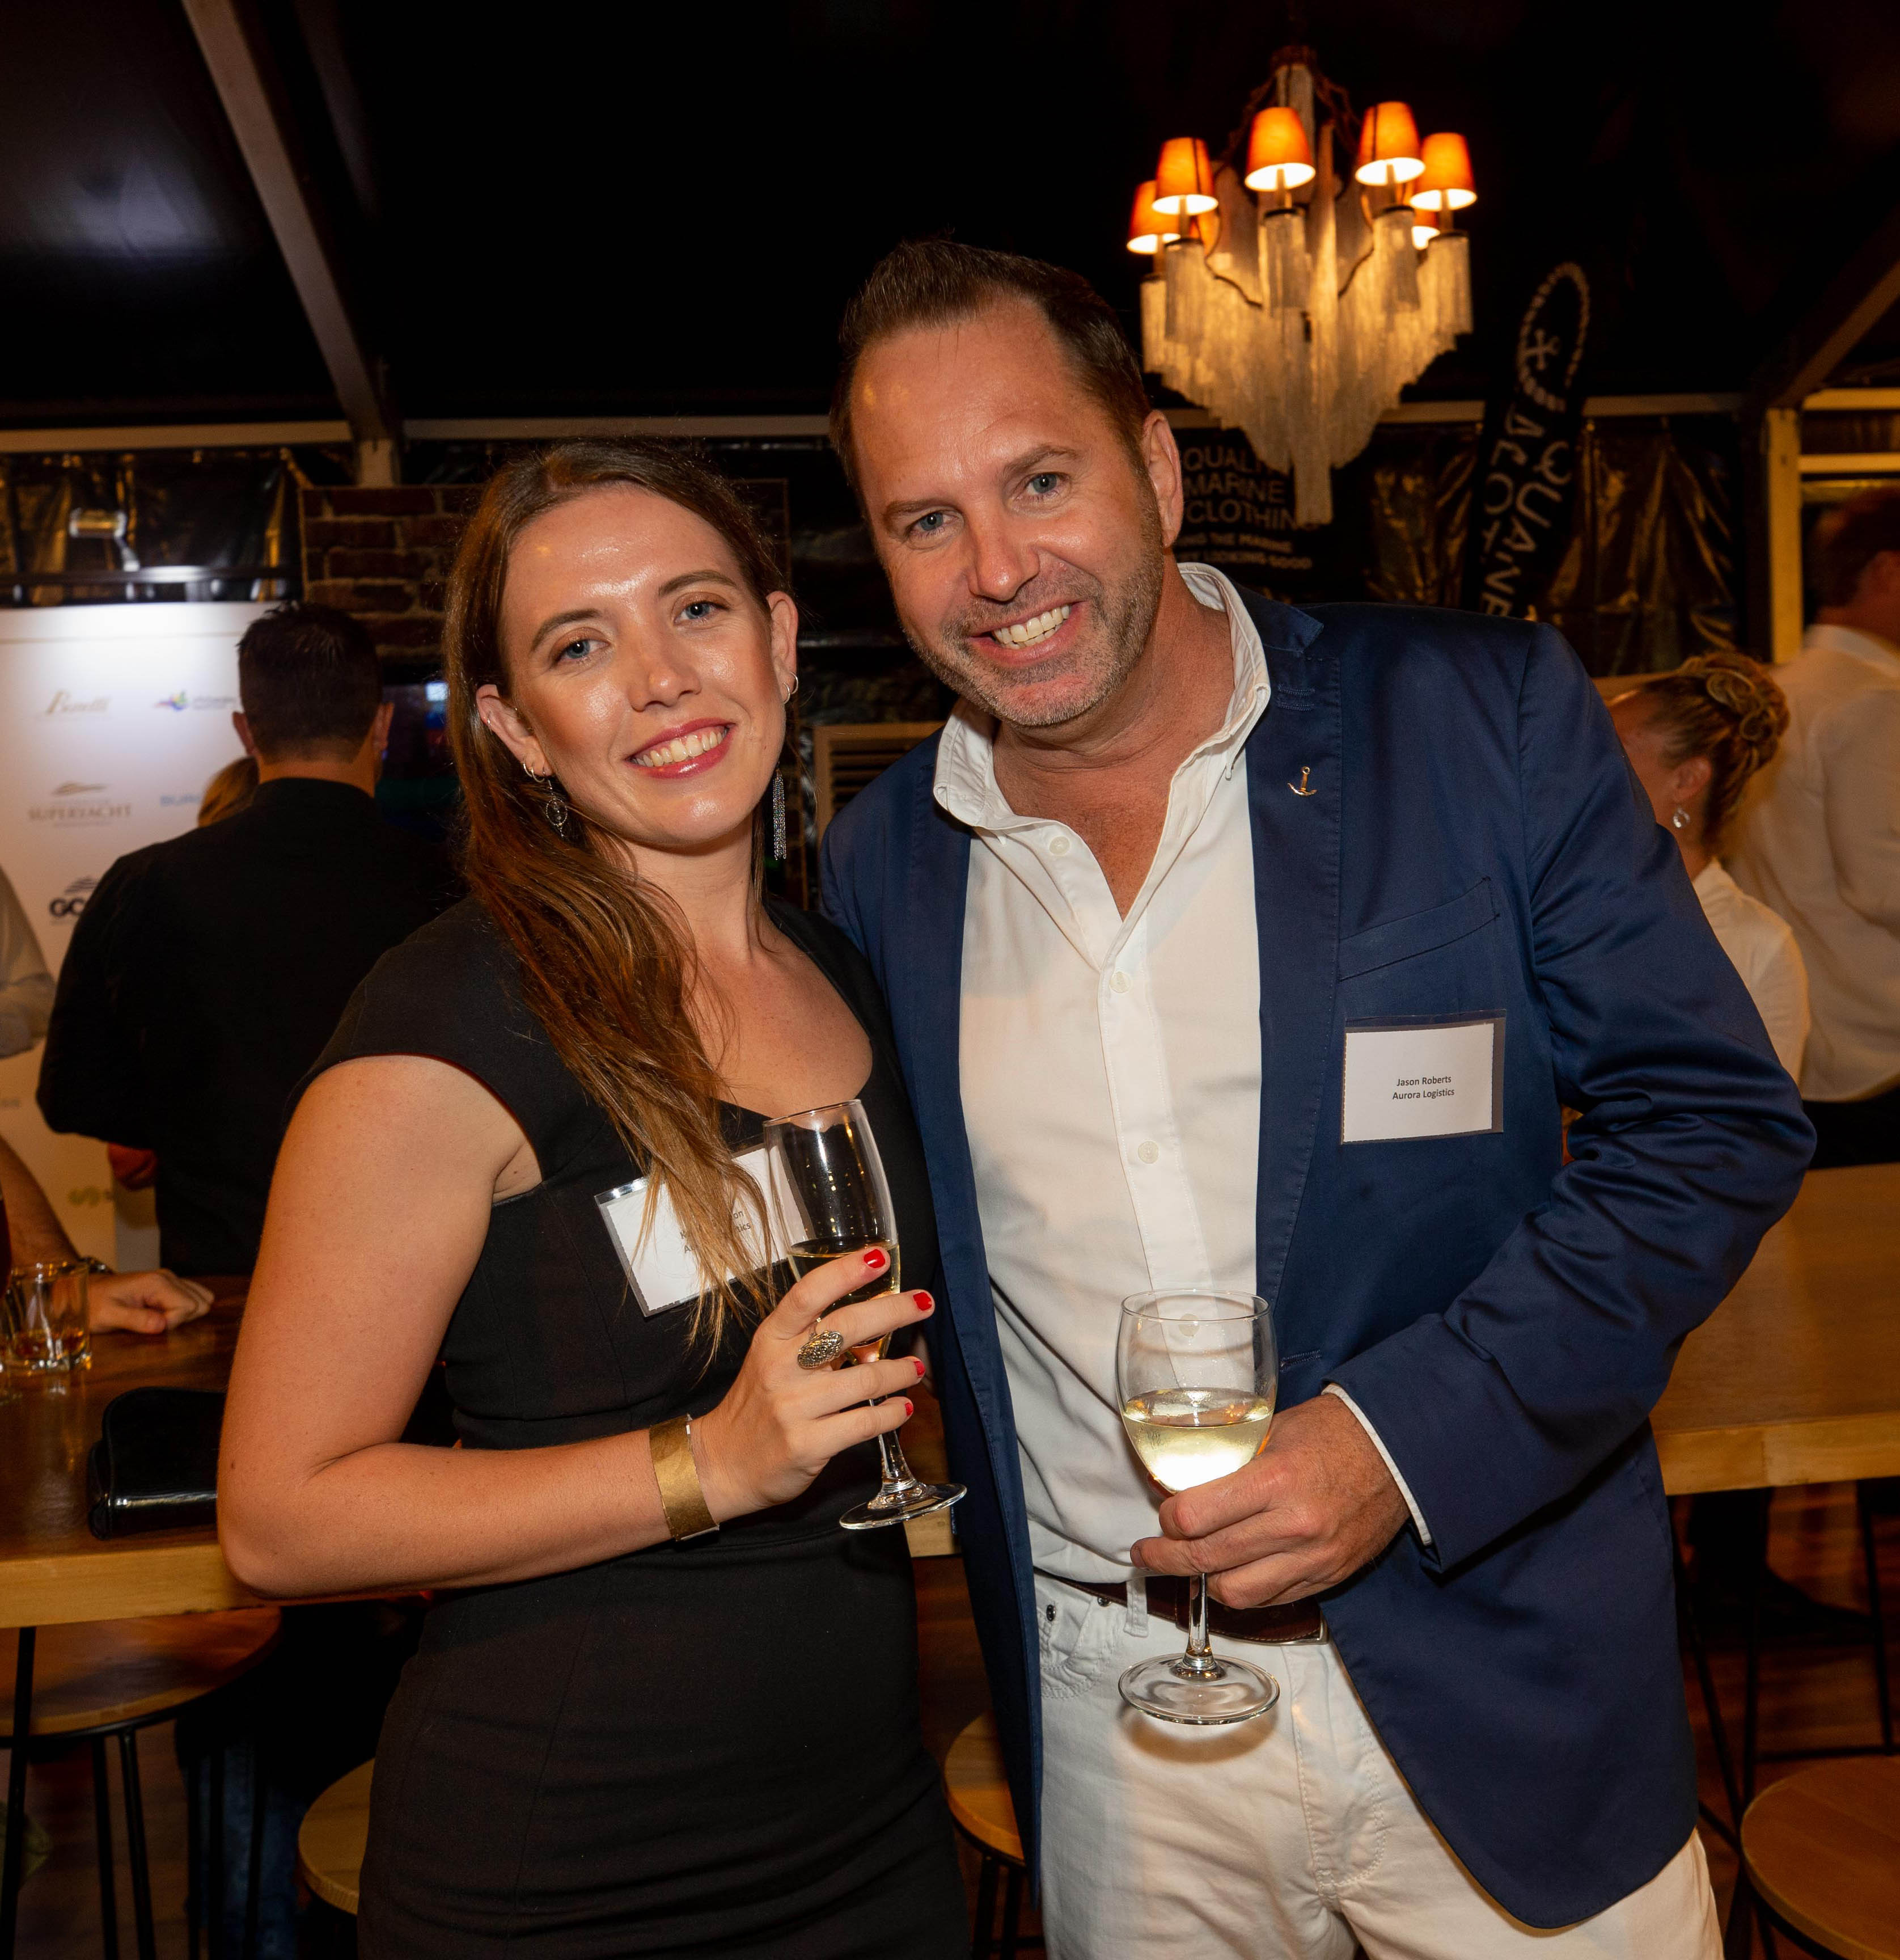 Aurora Global Logistics at the Australian Superyacht Rendezvous